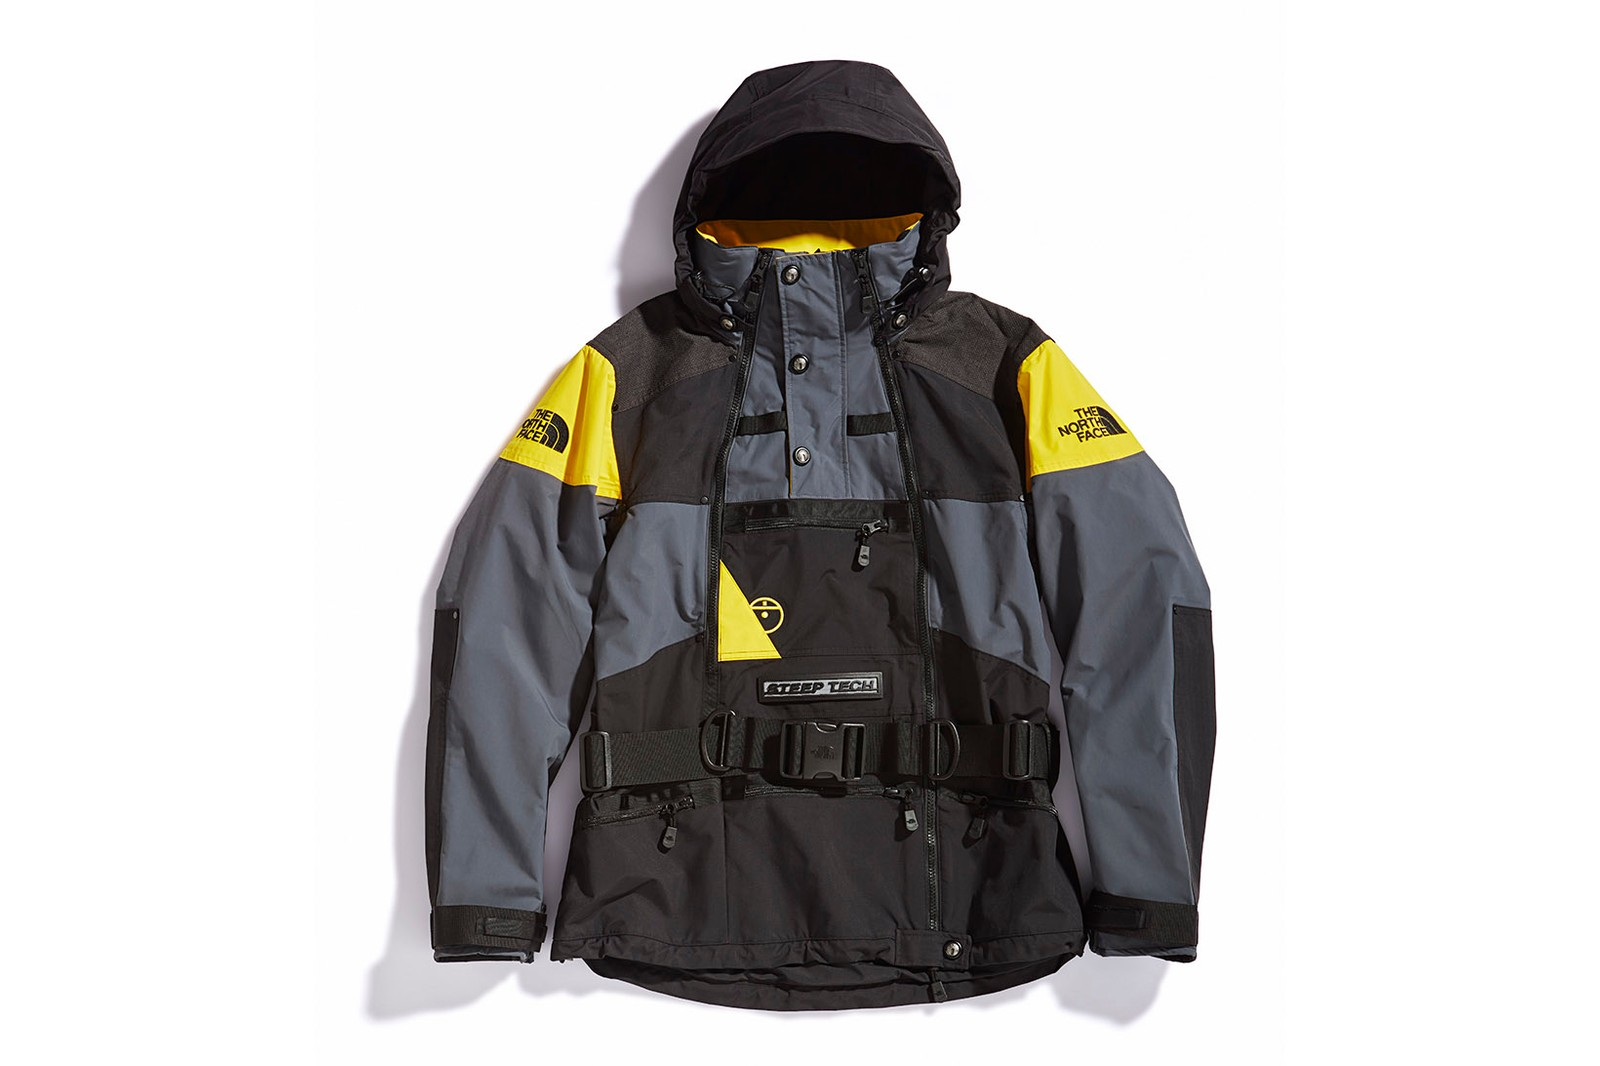 the north face steep tech collection 1991 skiing athlete scot schmidt nostalgia apparel accessories release